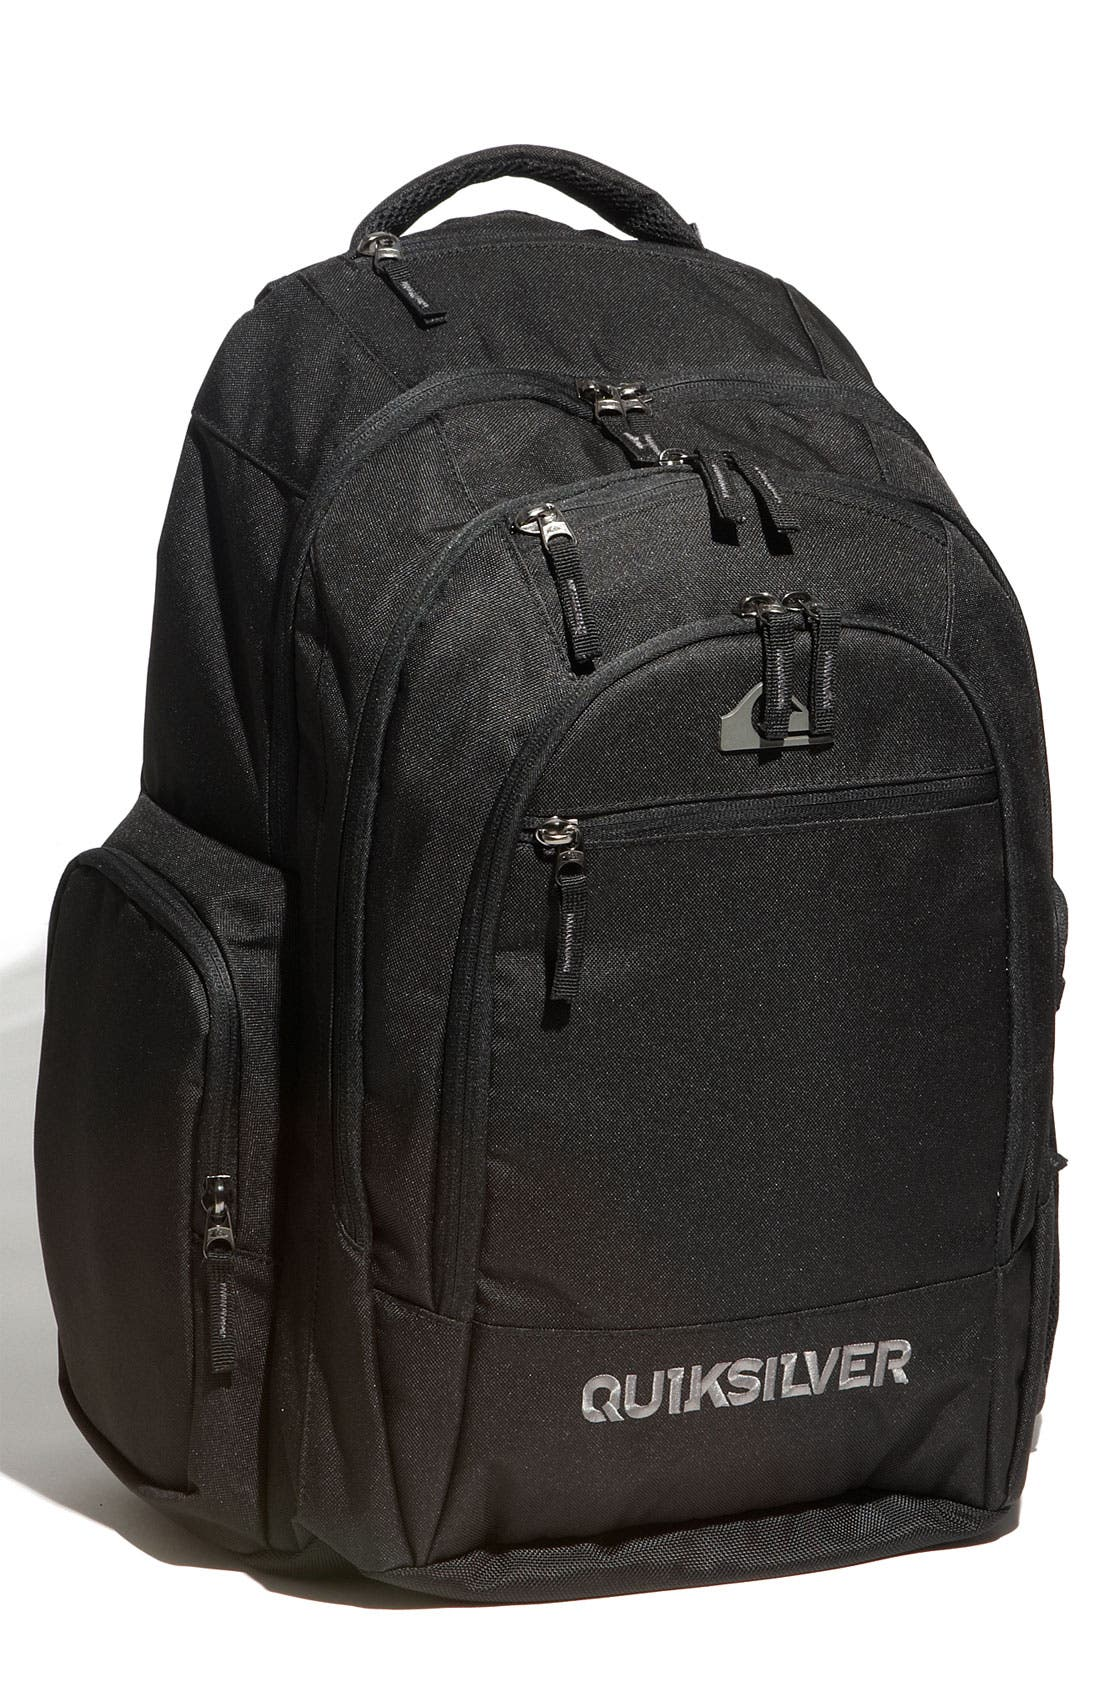 Main Image - Quiksilver 'Daddy Daybag' Diaper Bag